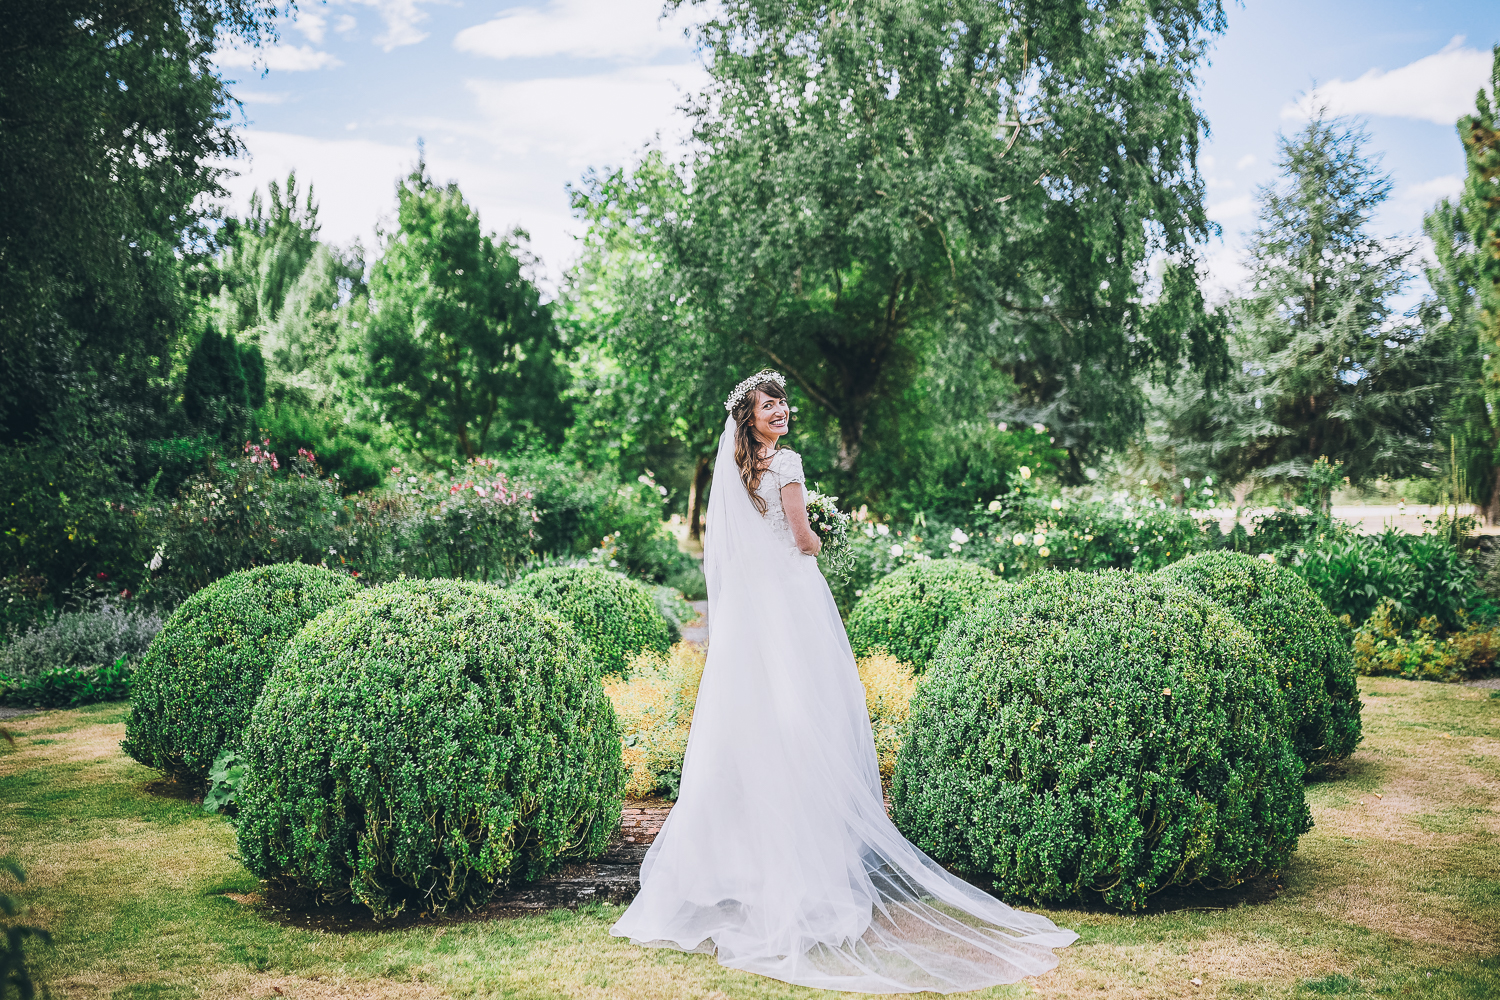 Flaxmere Garden - New Zealand Wedding Photographer